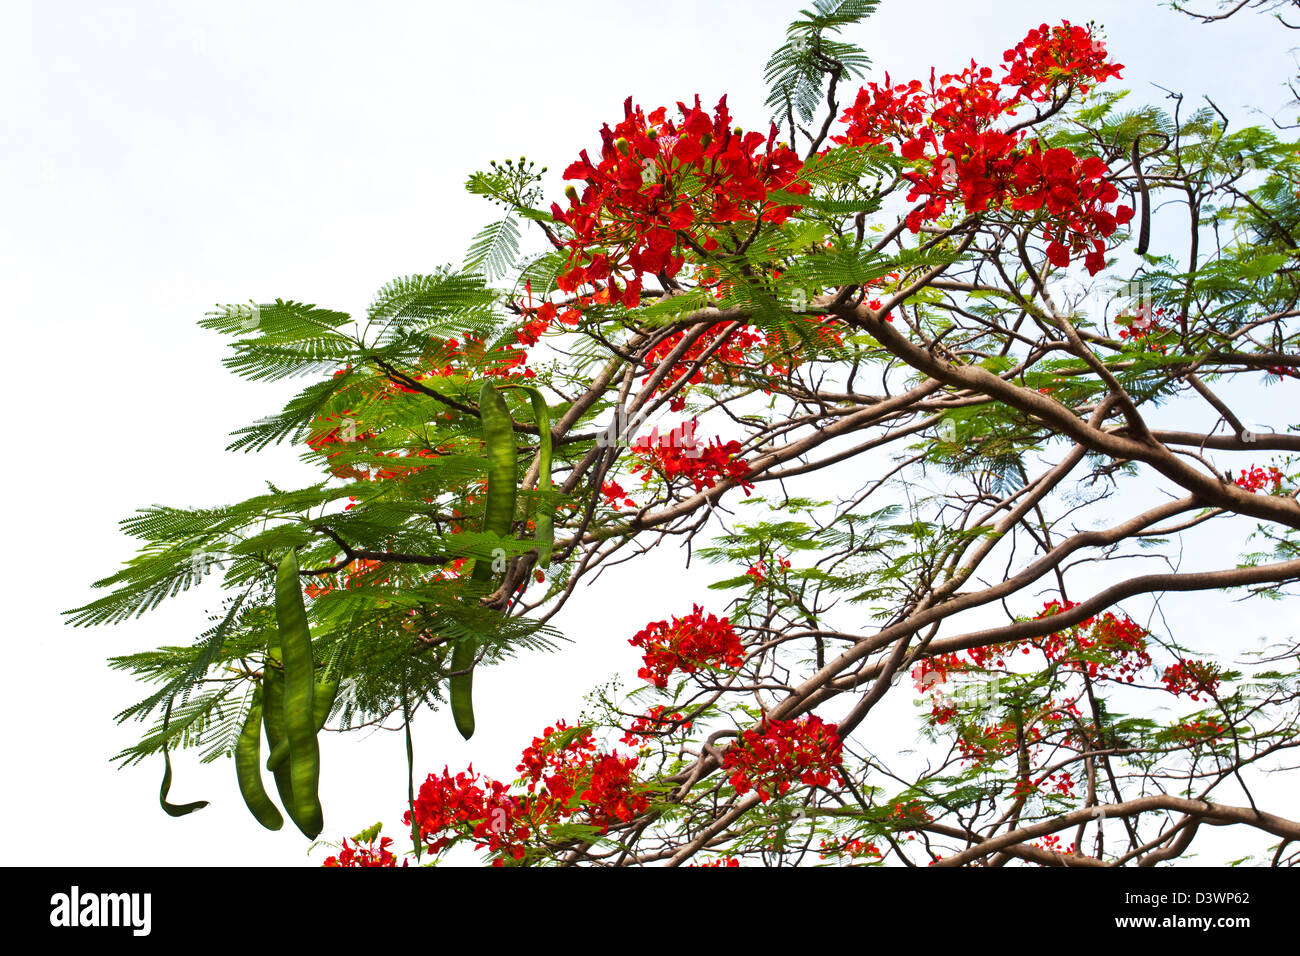 FLAMBOYANT FLOWERS AND GREEN SEED PODS ON THE TREE [DELONIX REGIA] - Stock Image